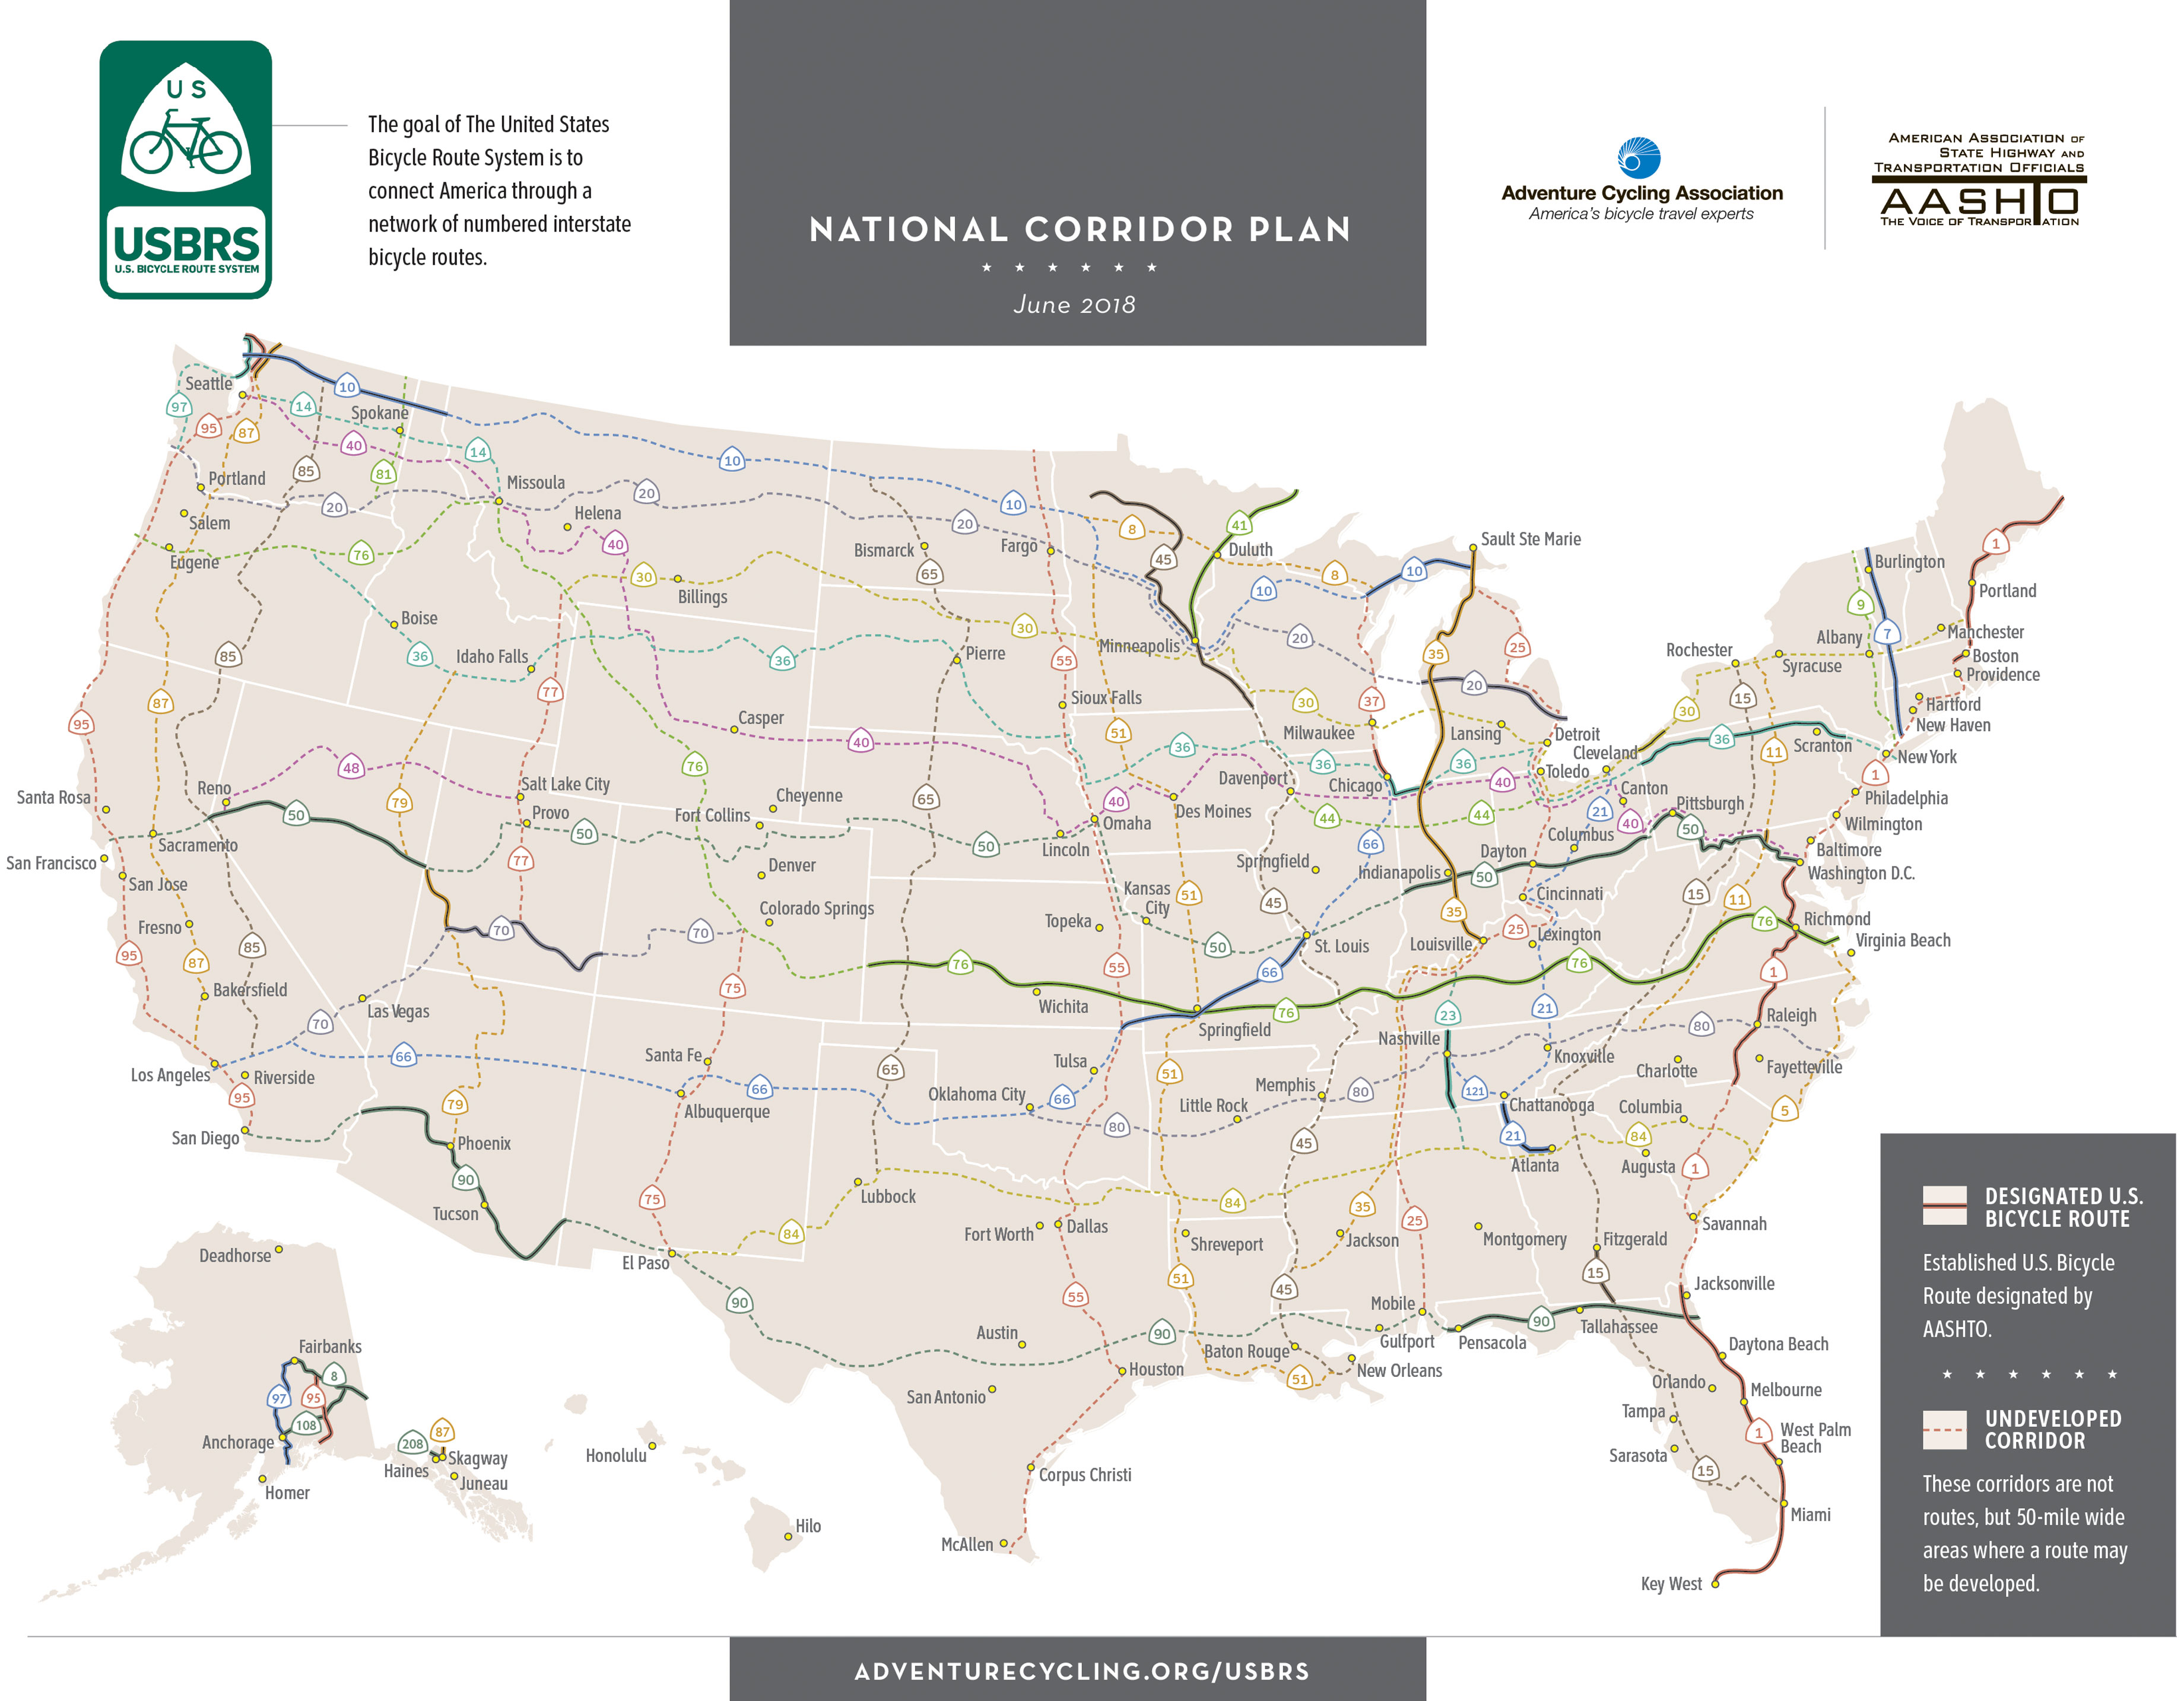 U.S. Bicycle Route System overview map - click for full-size map